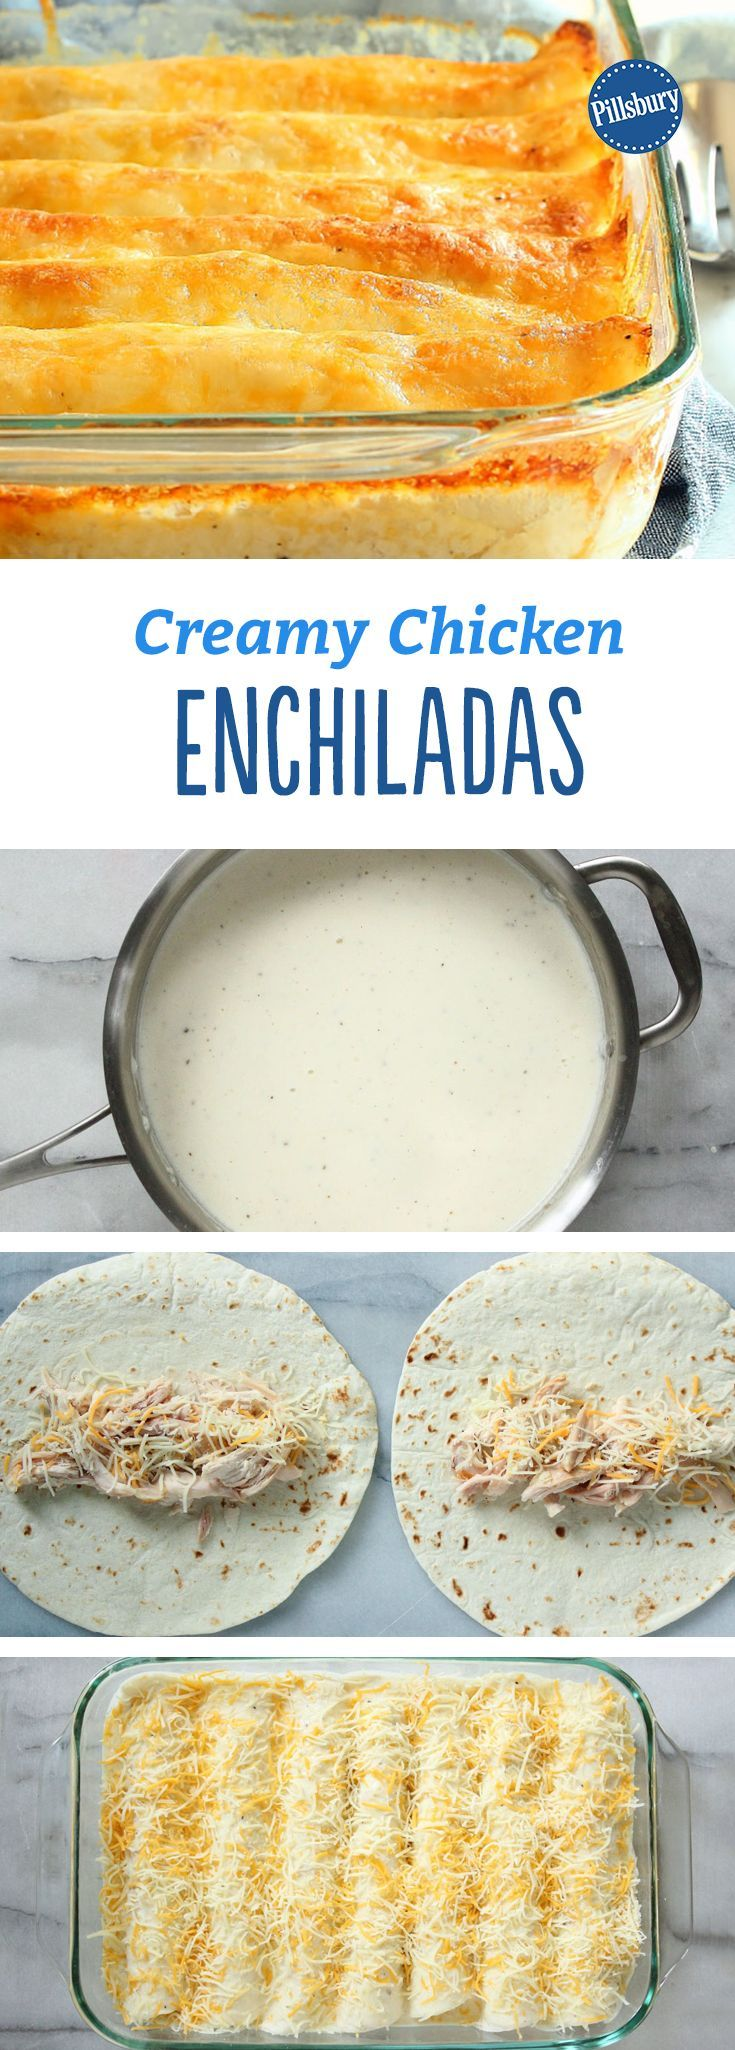 Creamy Chicken Enchiladas: This might just be our favorite chicken enchilada recipe. They're so easy—just seven ingredients! —and the unexpected addition of Greek yogurt makes for a rich, creamy white sauce that can't be beat. And of course, the whole thing is finished with piles of ooey, gooey cheese. It's a dinner winner! #Recipes